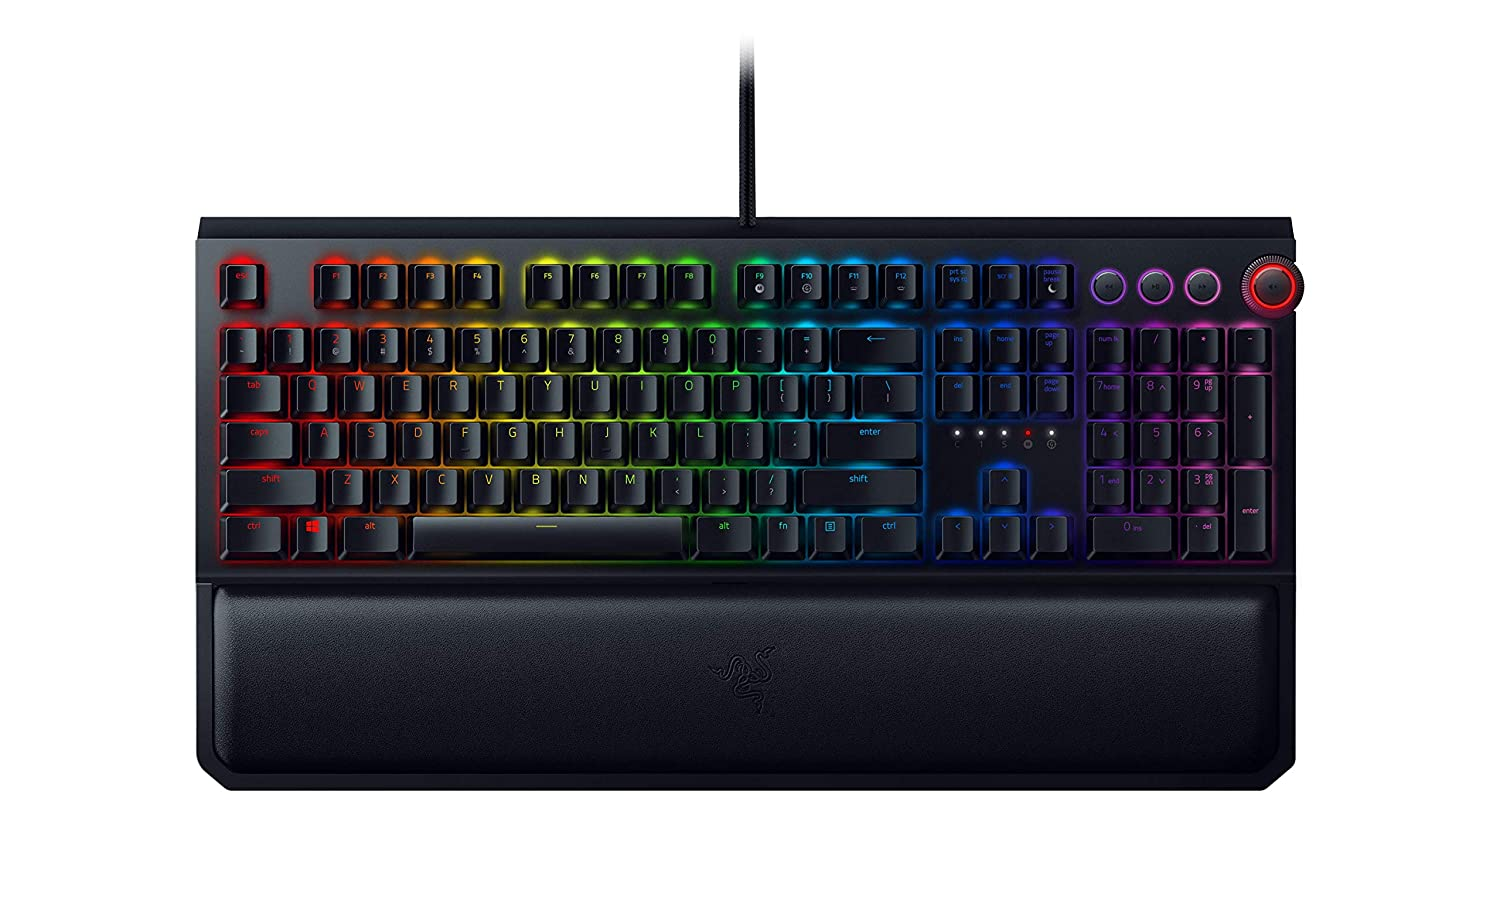 db36183c17a Razer BlackWidow Elite, Mechanical Gaming Keyboard with Green Switches  (Tactile and Clicky), RGB Chroma Lighting and Magnetic Wrist Rest, ...